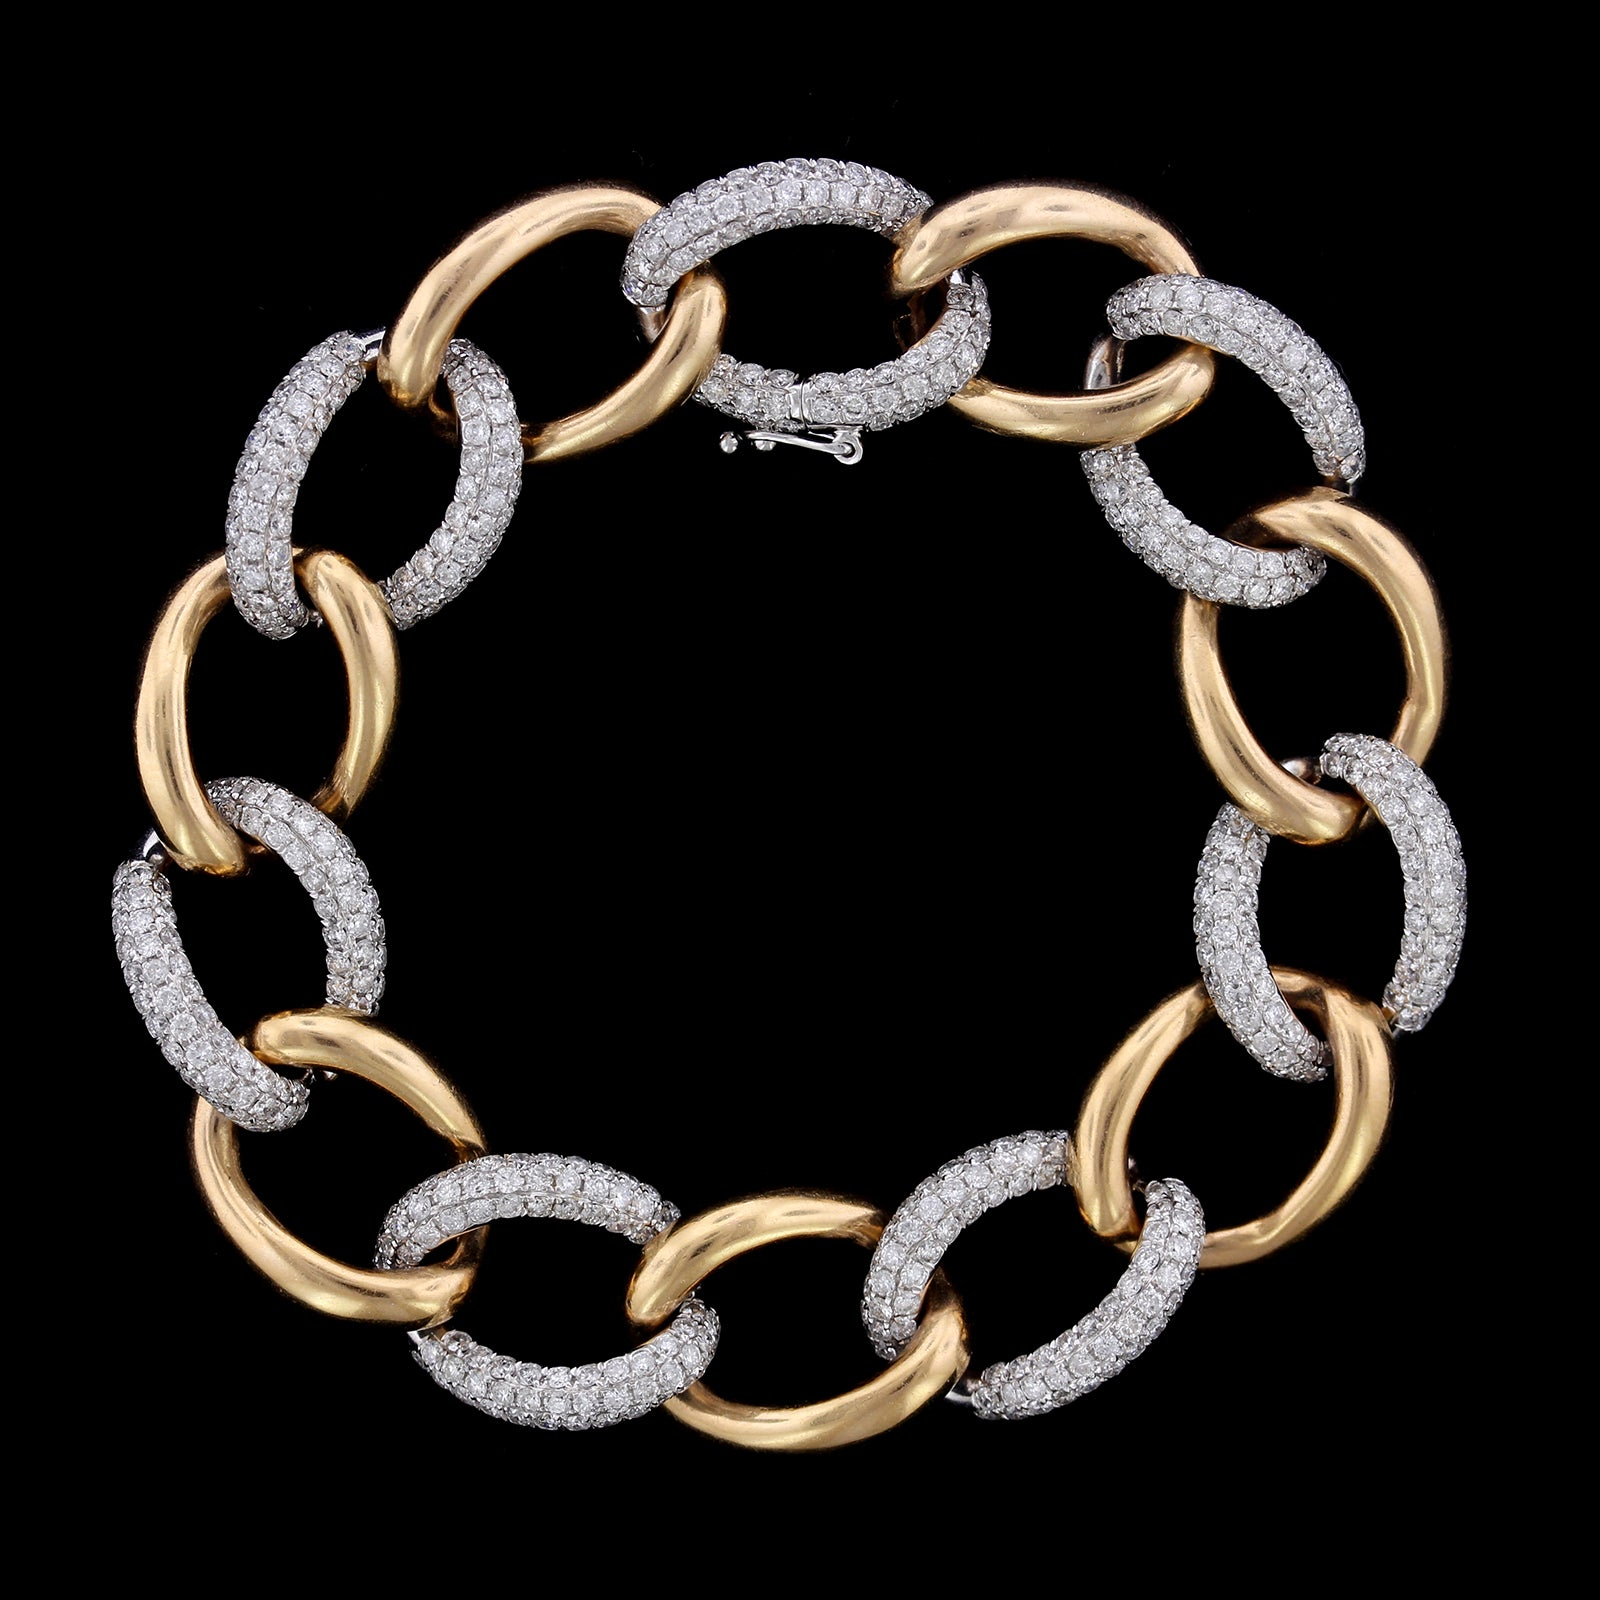 18K Rose Gold and White Gold Estate Diamond Link Bracelet